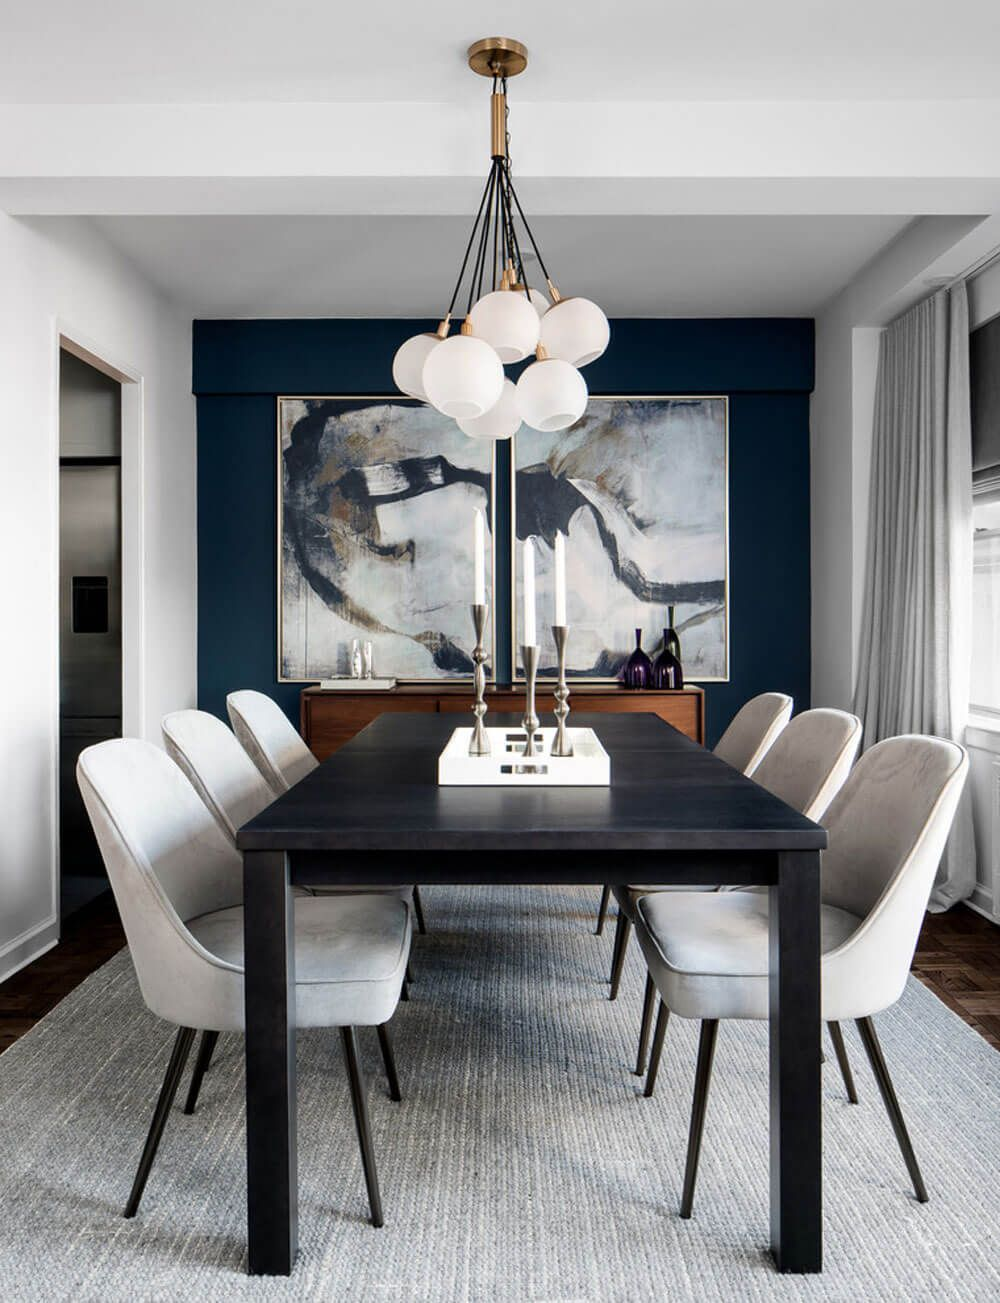 Out Of The Box Dining Room Wall Decor Ideas Small Dining Room Decor Black And White Dining Room Mid Century Dining Room